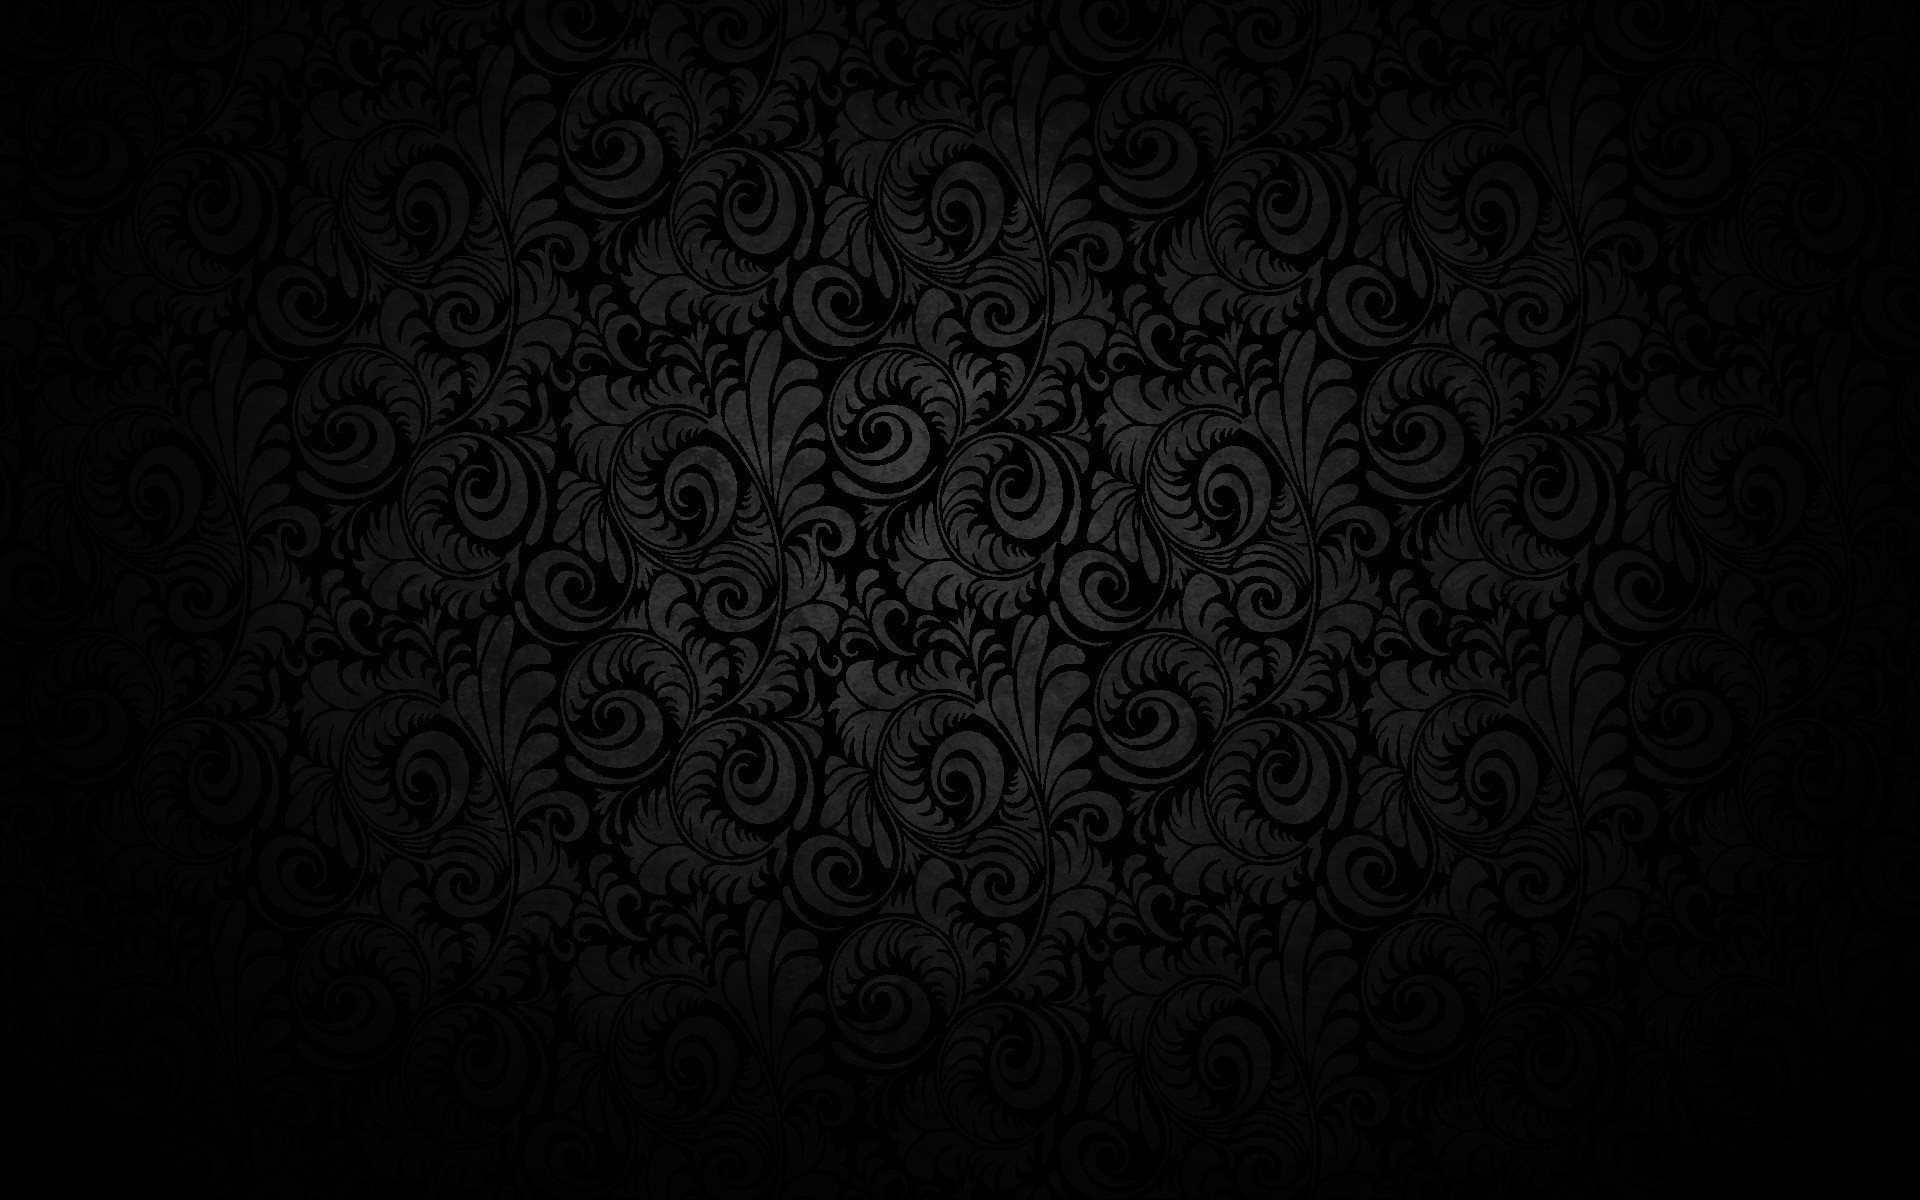 1920x1200 black and white photos | ABSTRACT PATTERN HD WALLPAPER